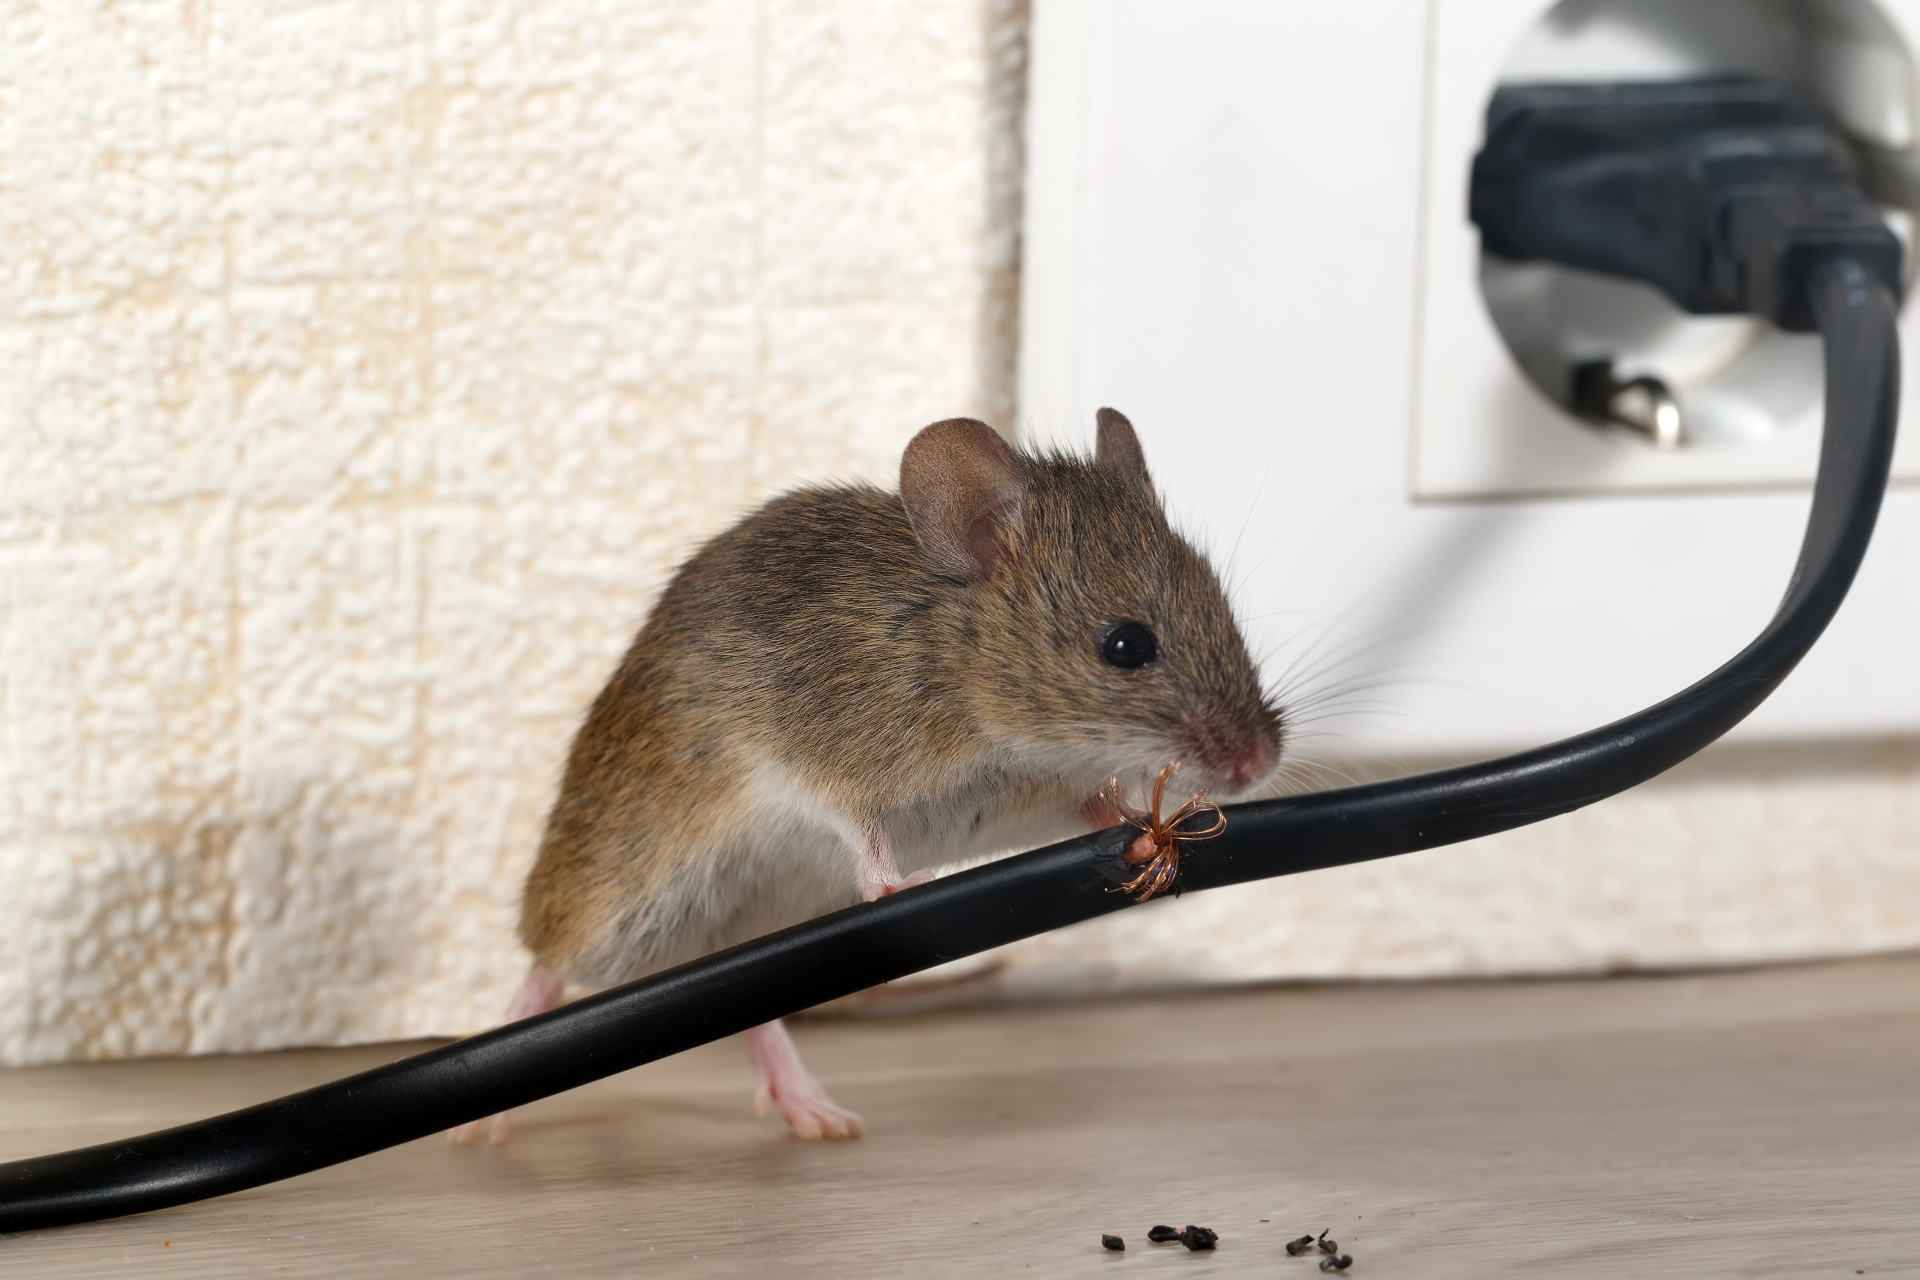 Mice Infestation, Pest Control in Epsom, Horton, Longmead, KT19. Call Now 020 8166 9746